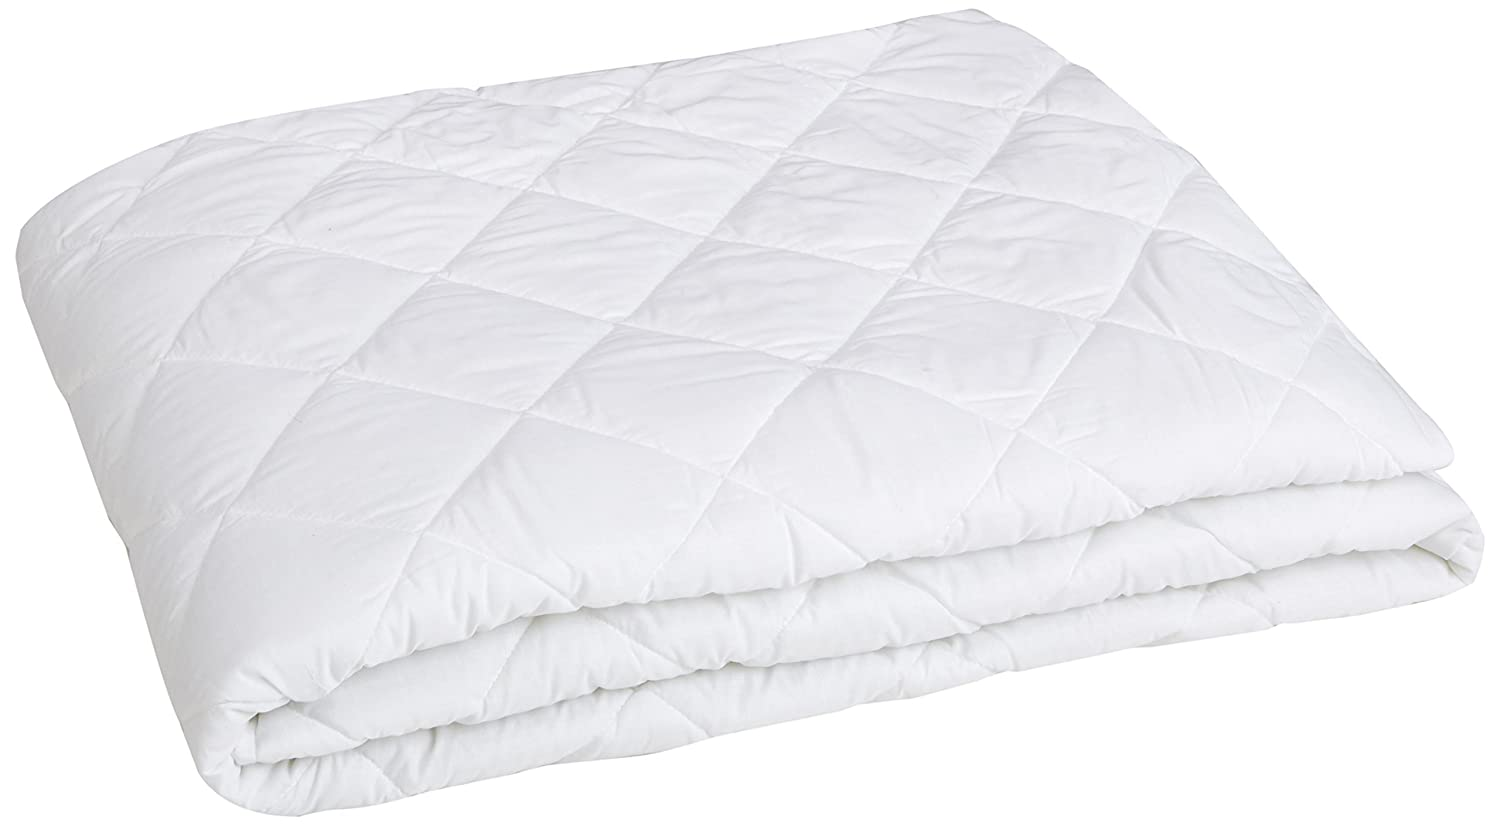 Beautiful Mattress Pads For Beds Ease Bedding With Style